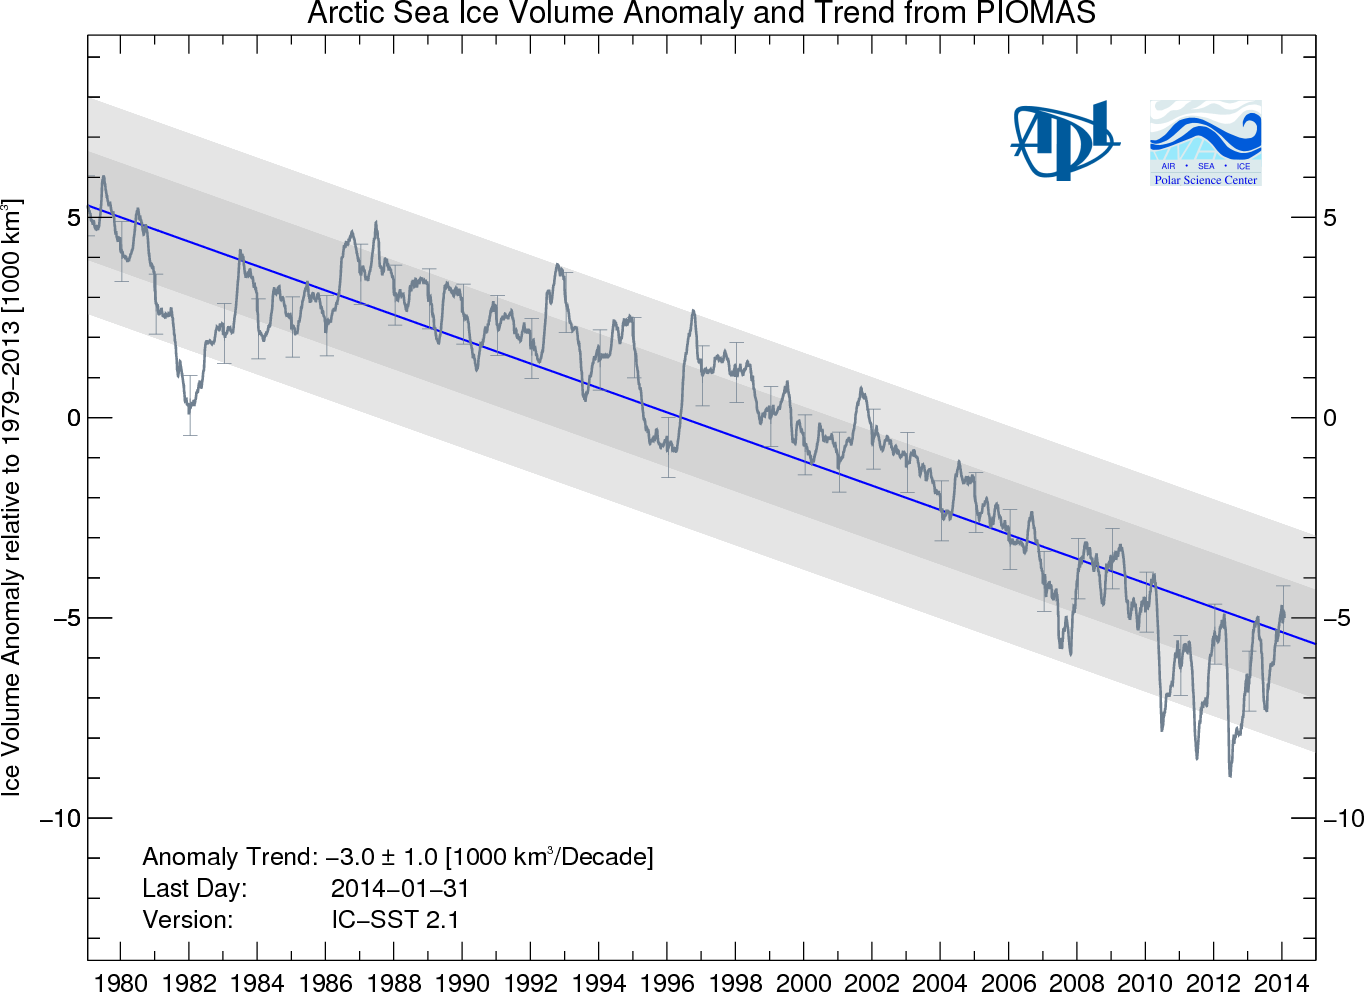 Sea Ice Volume